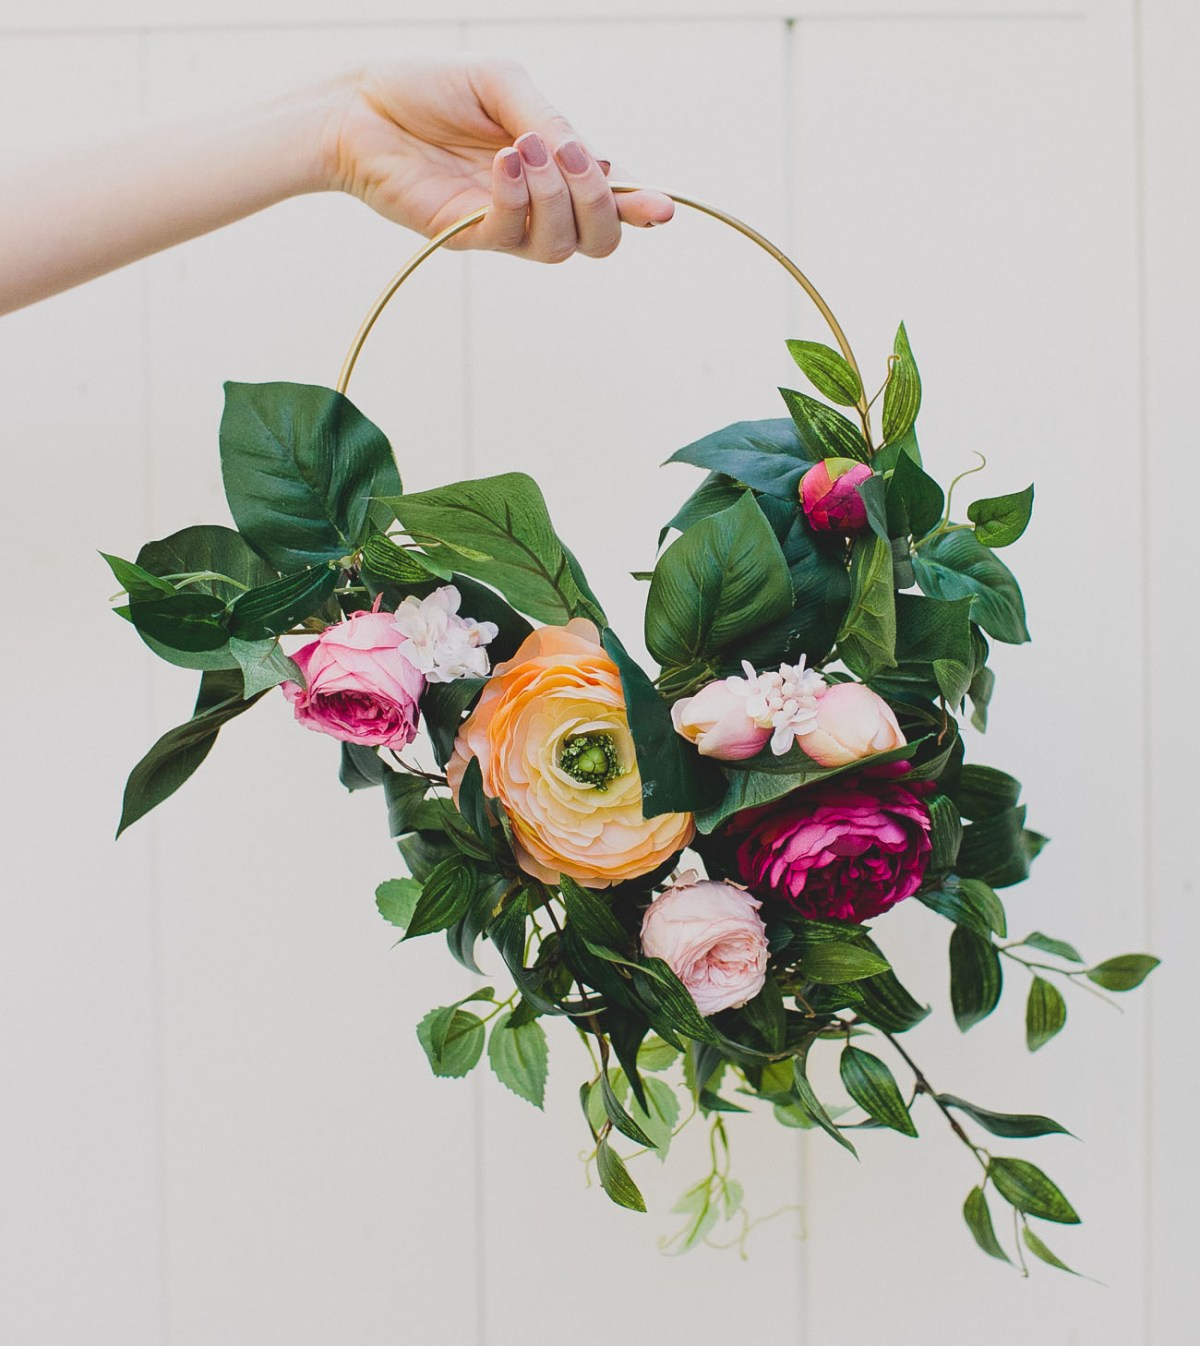 DIY Hoop Bouquet